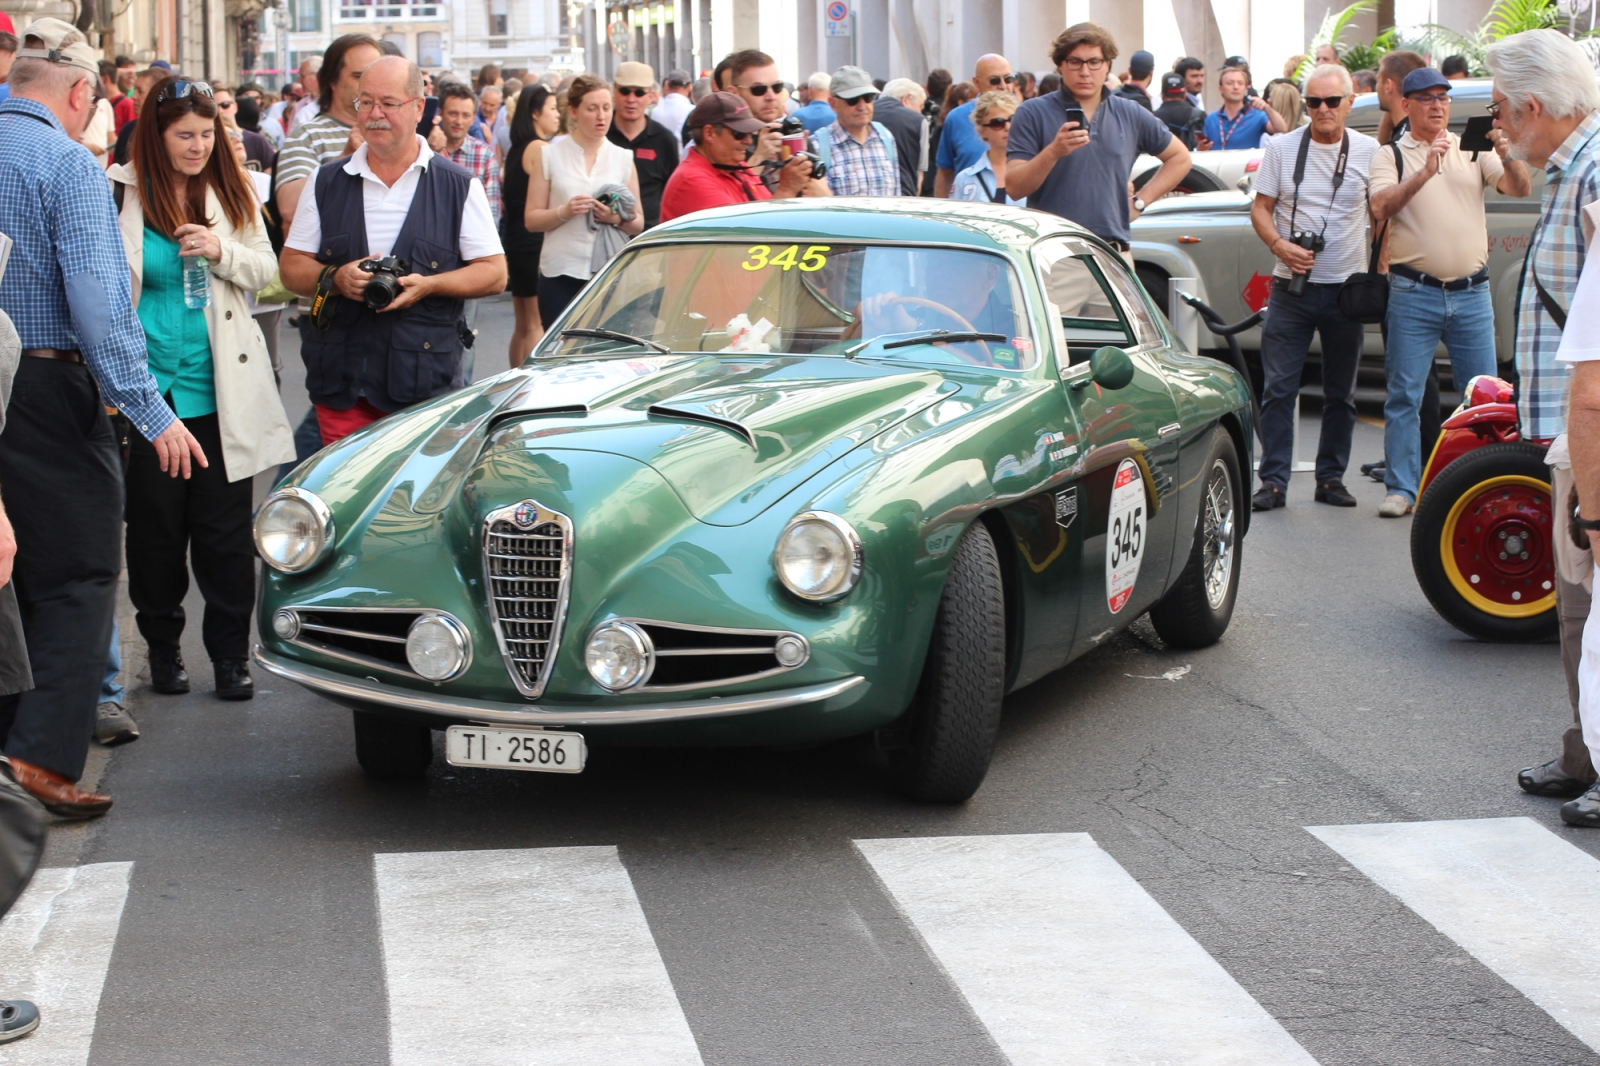 Mille Miglia Experience Racing in Style